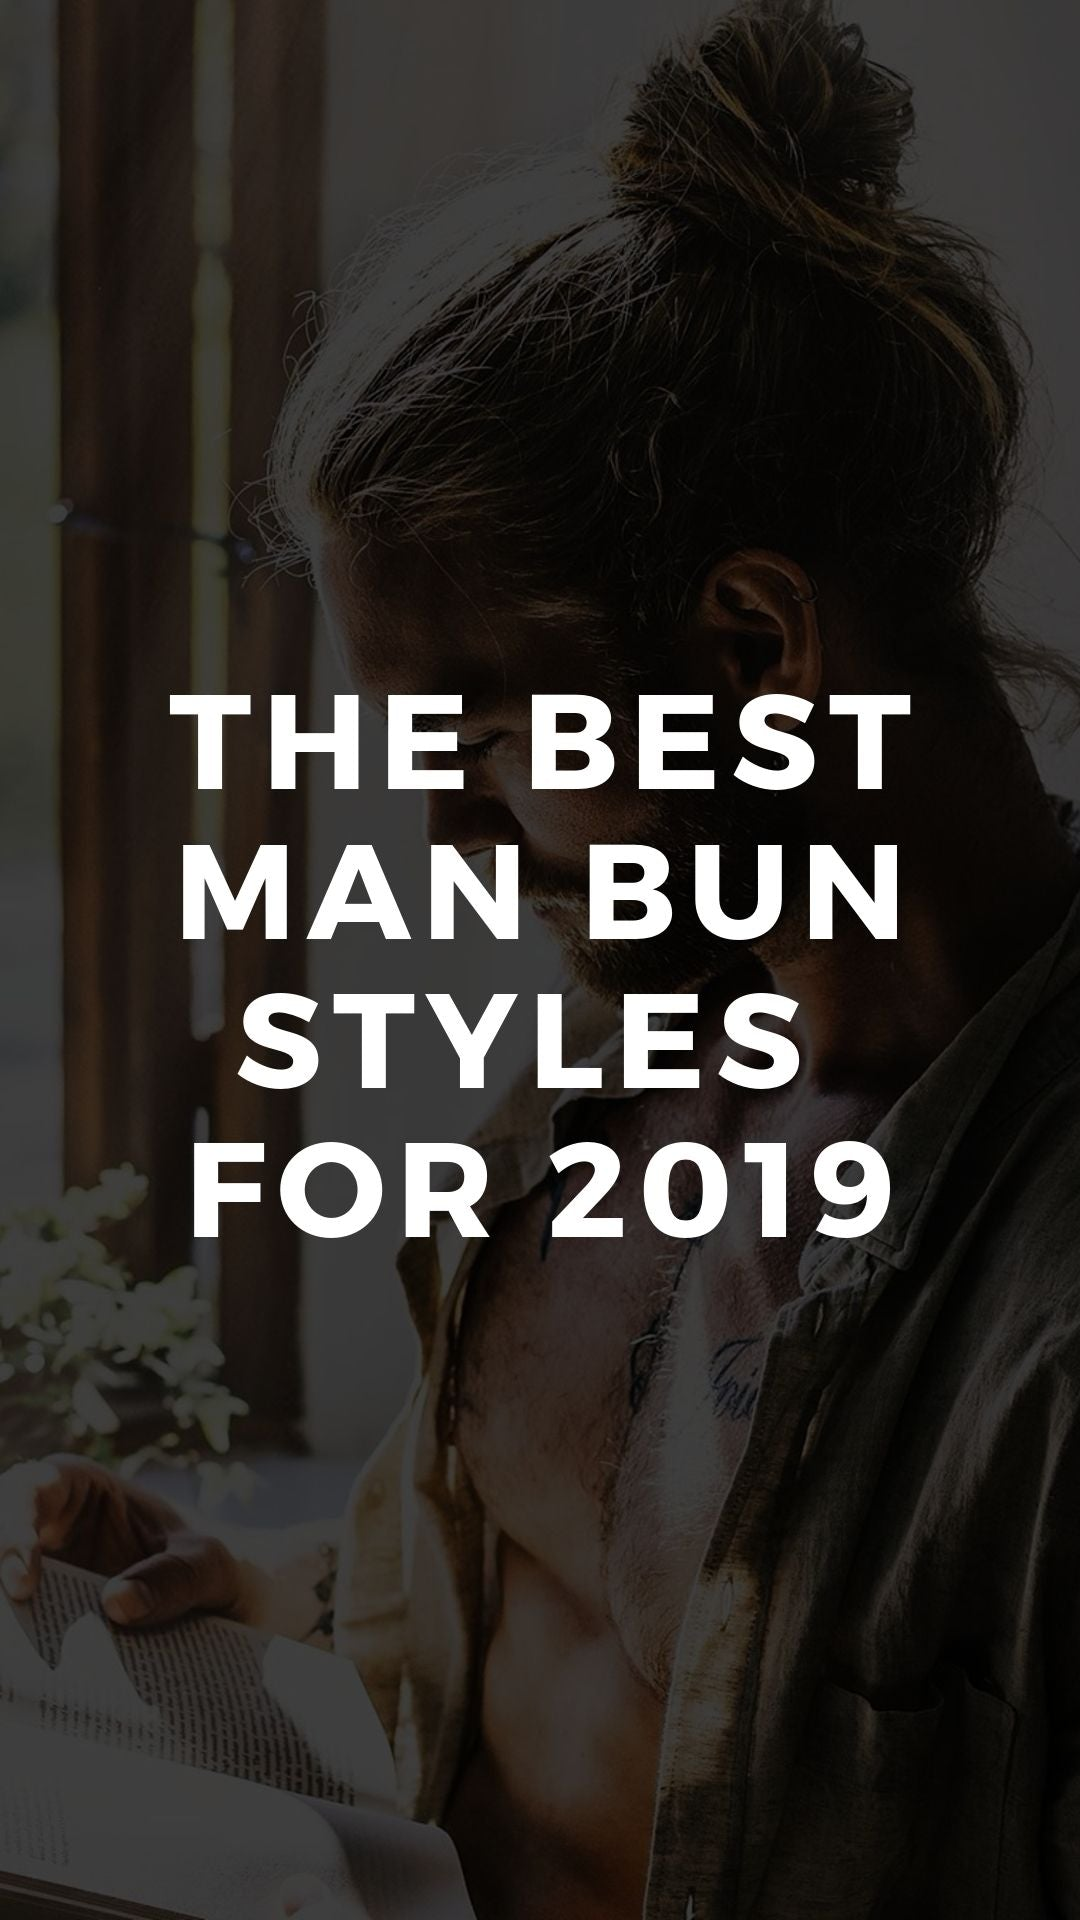 The Best Man Bun Styles  for 2019